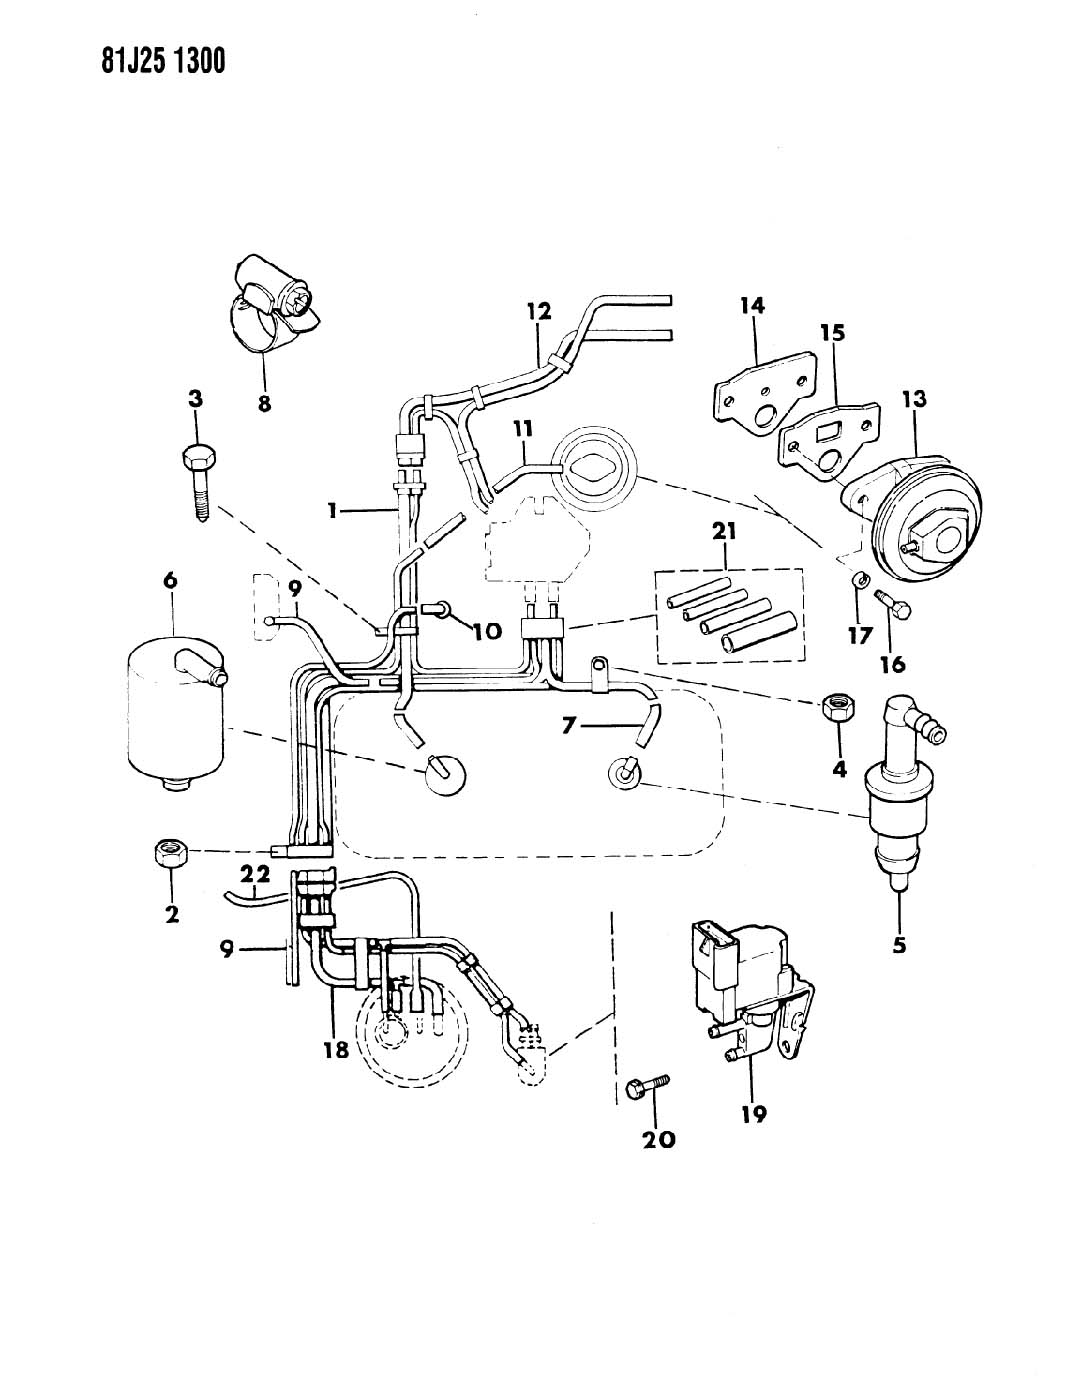 87 Wrangler Wiring Diagram Get Free Image About Wiring Diagram